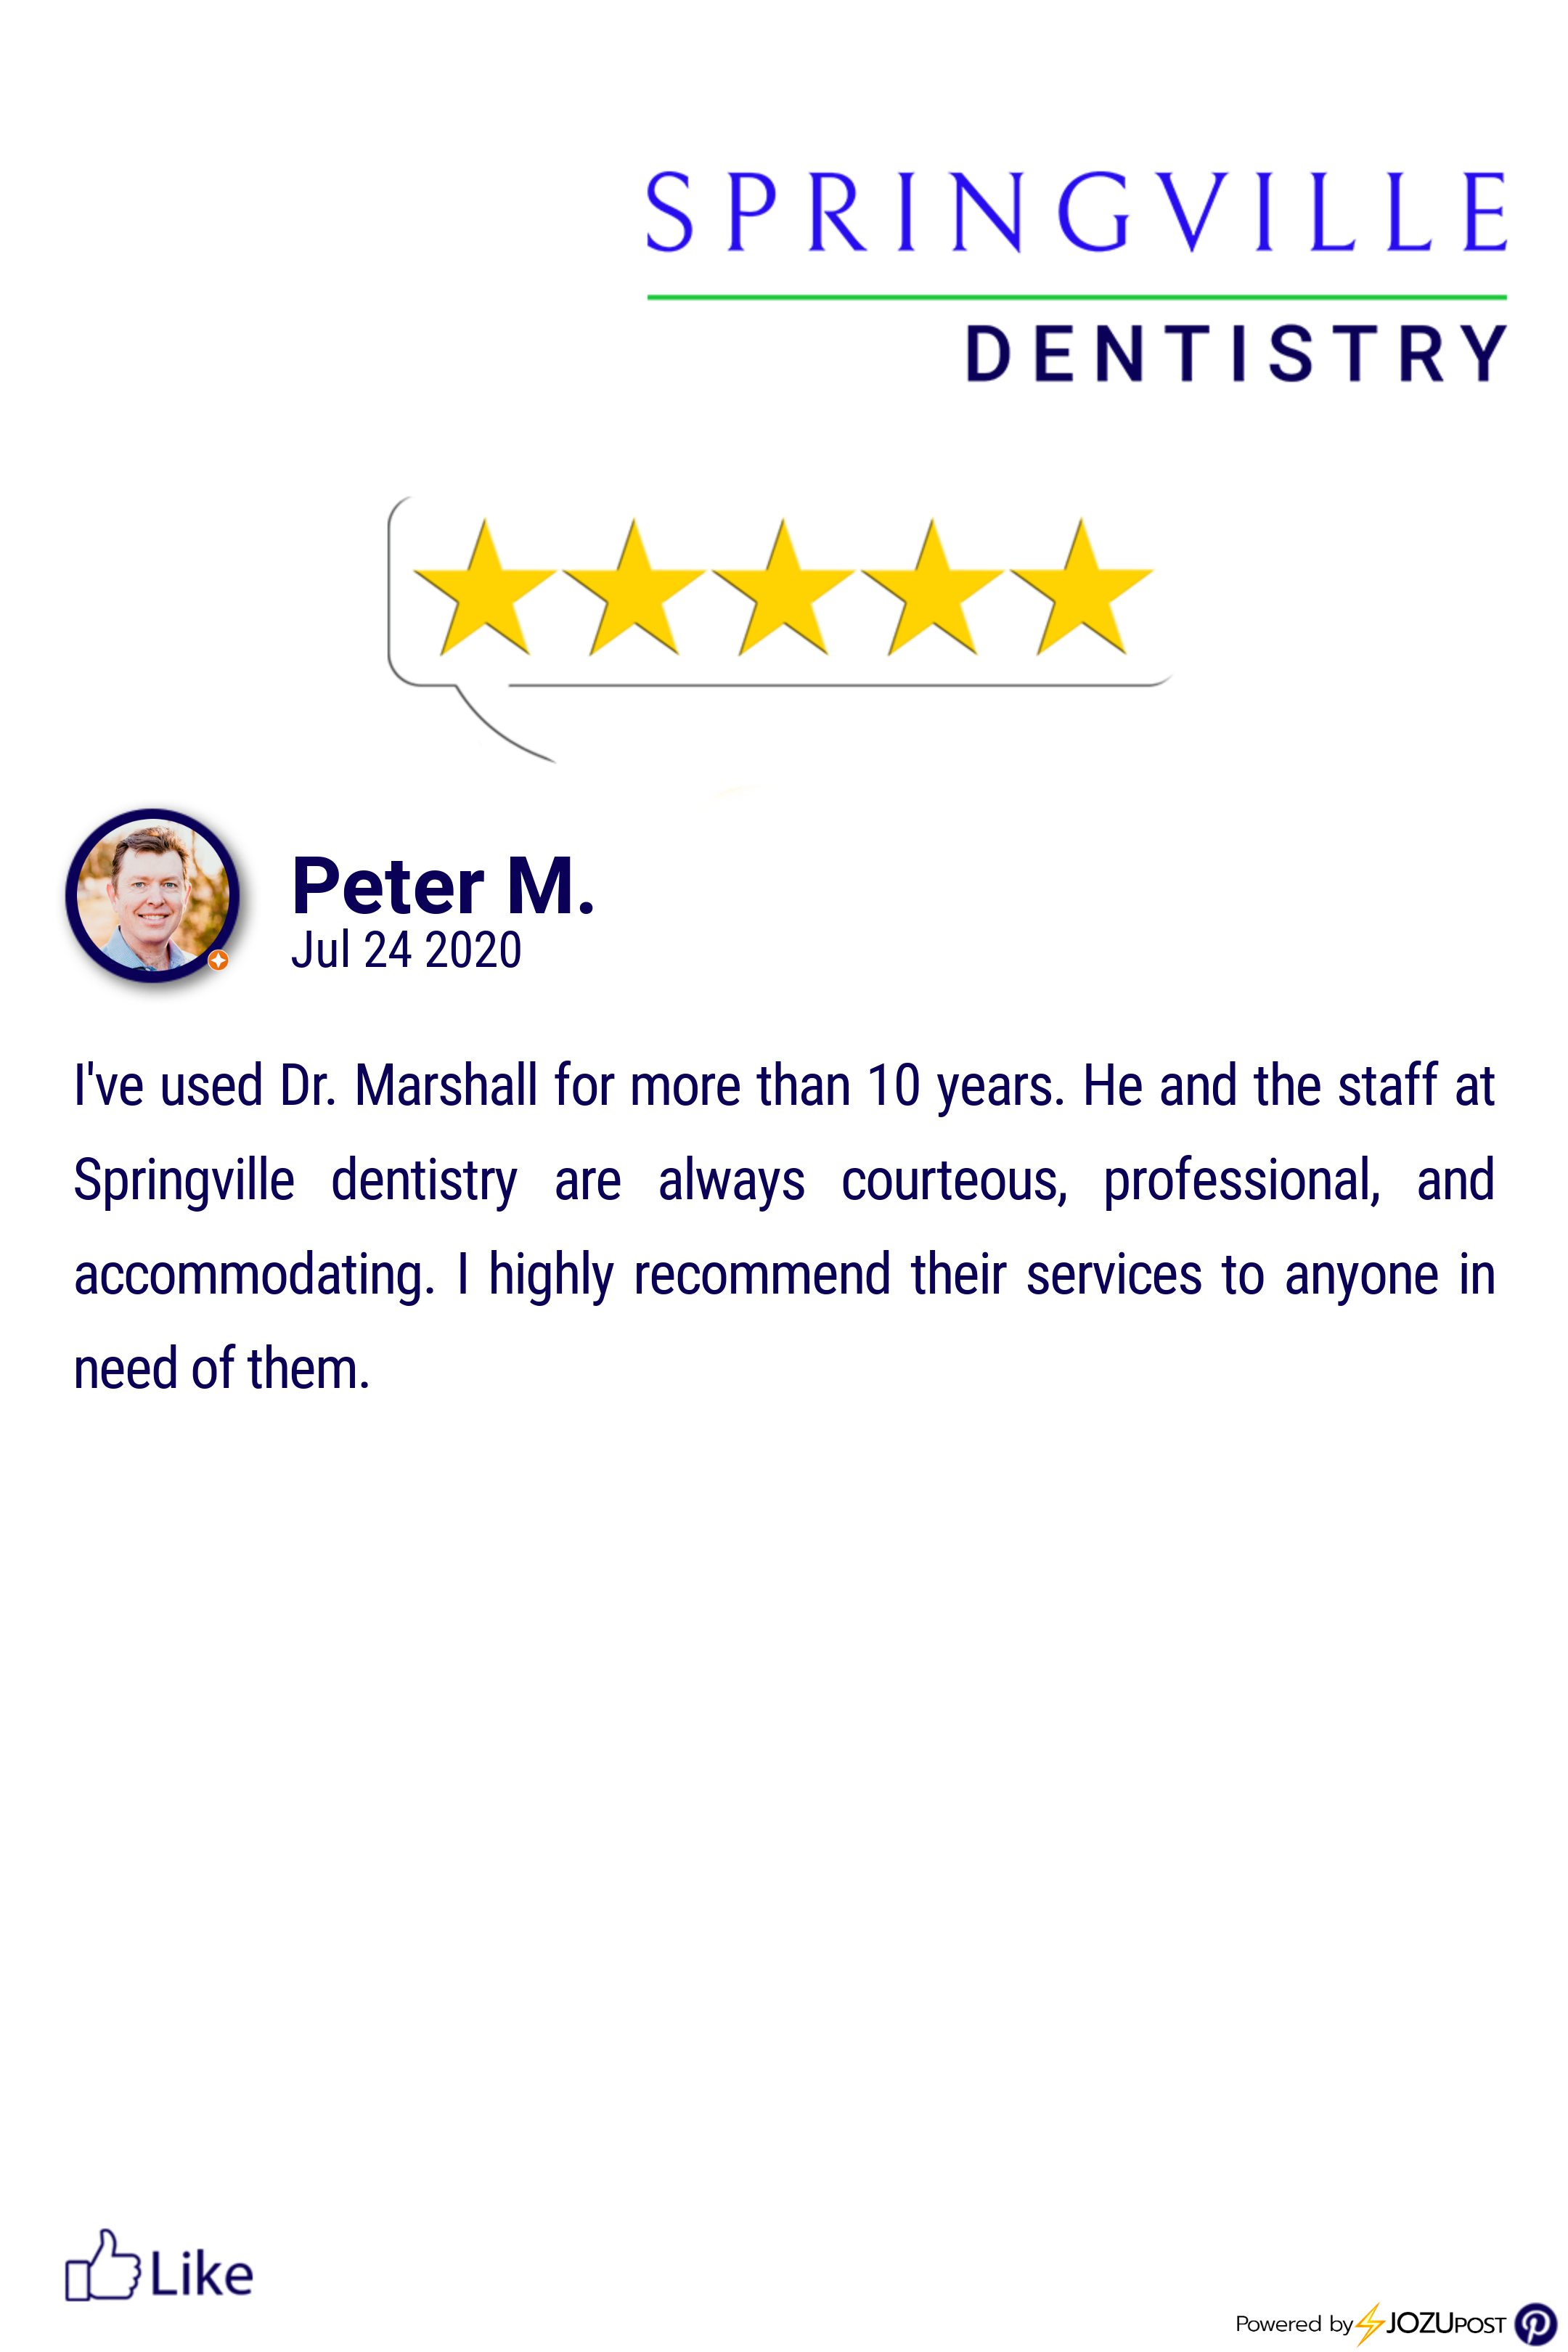 We Appreciate Our Patients Here Is Our Latest Five Star Review From Peter M We Love To Recognize Those Springville Dentistry Looking Forward To Seeing You